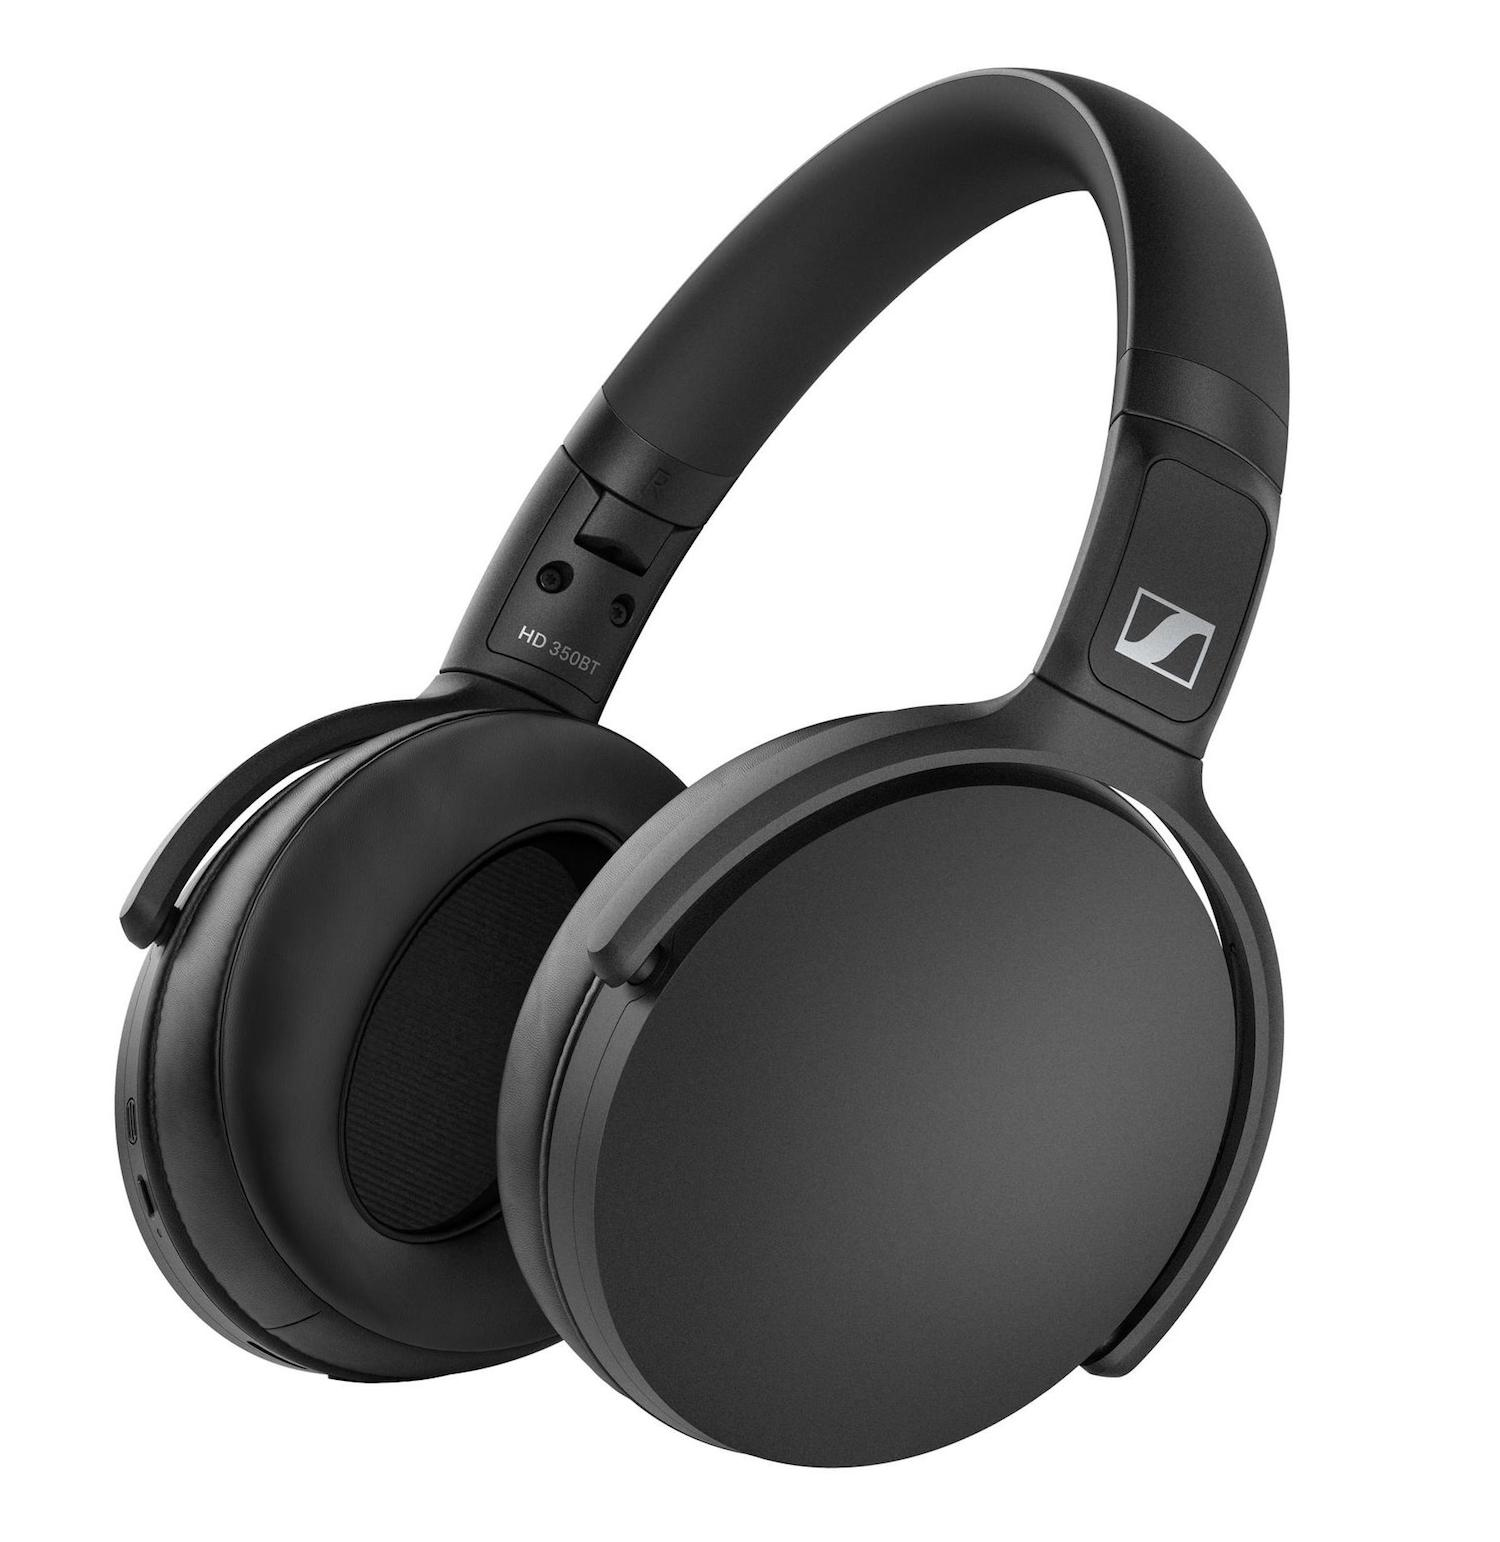 Sennheiser HD 350BT cuffia headphones bluetooth wireless audio exhibo strumenti musicali